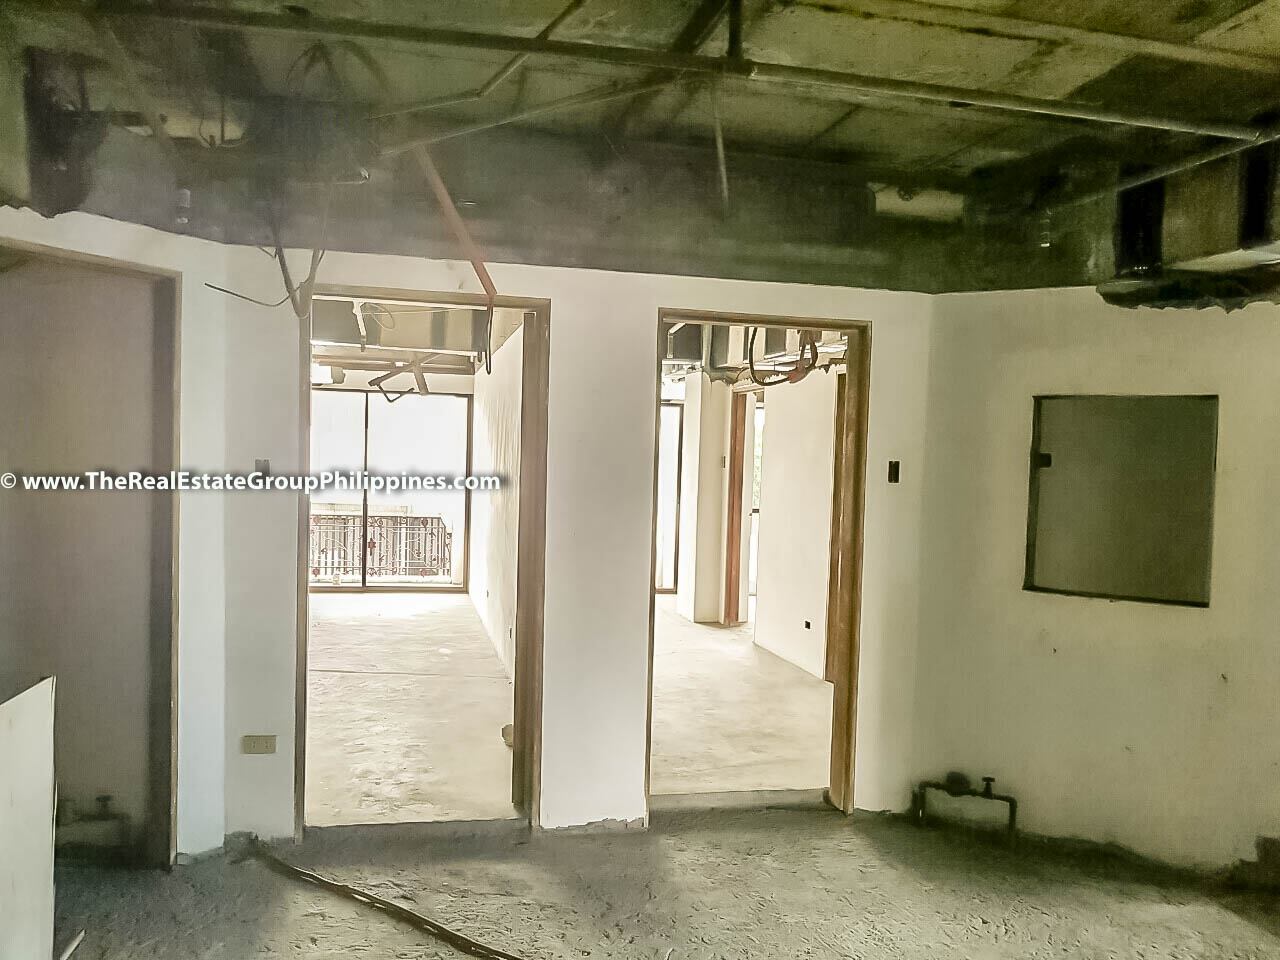 1,260 Sqm, 5-Storey Residential Building For Sale, Makati City Interior